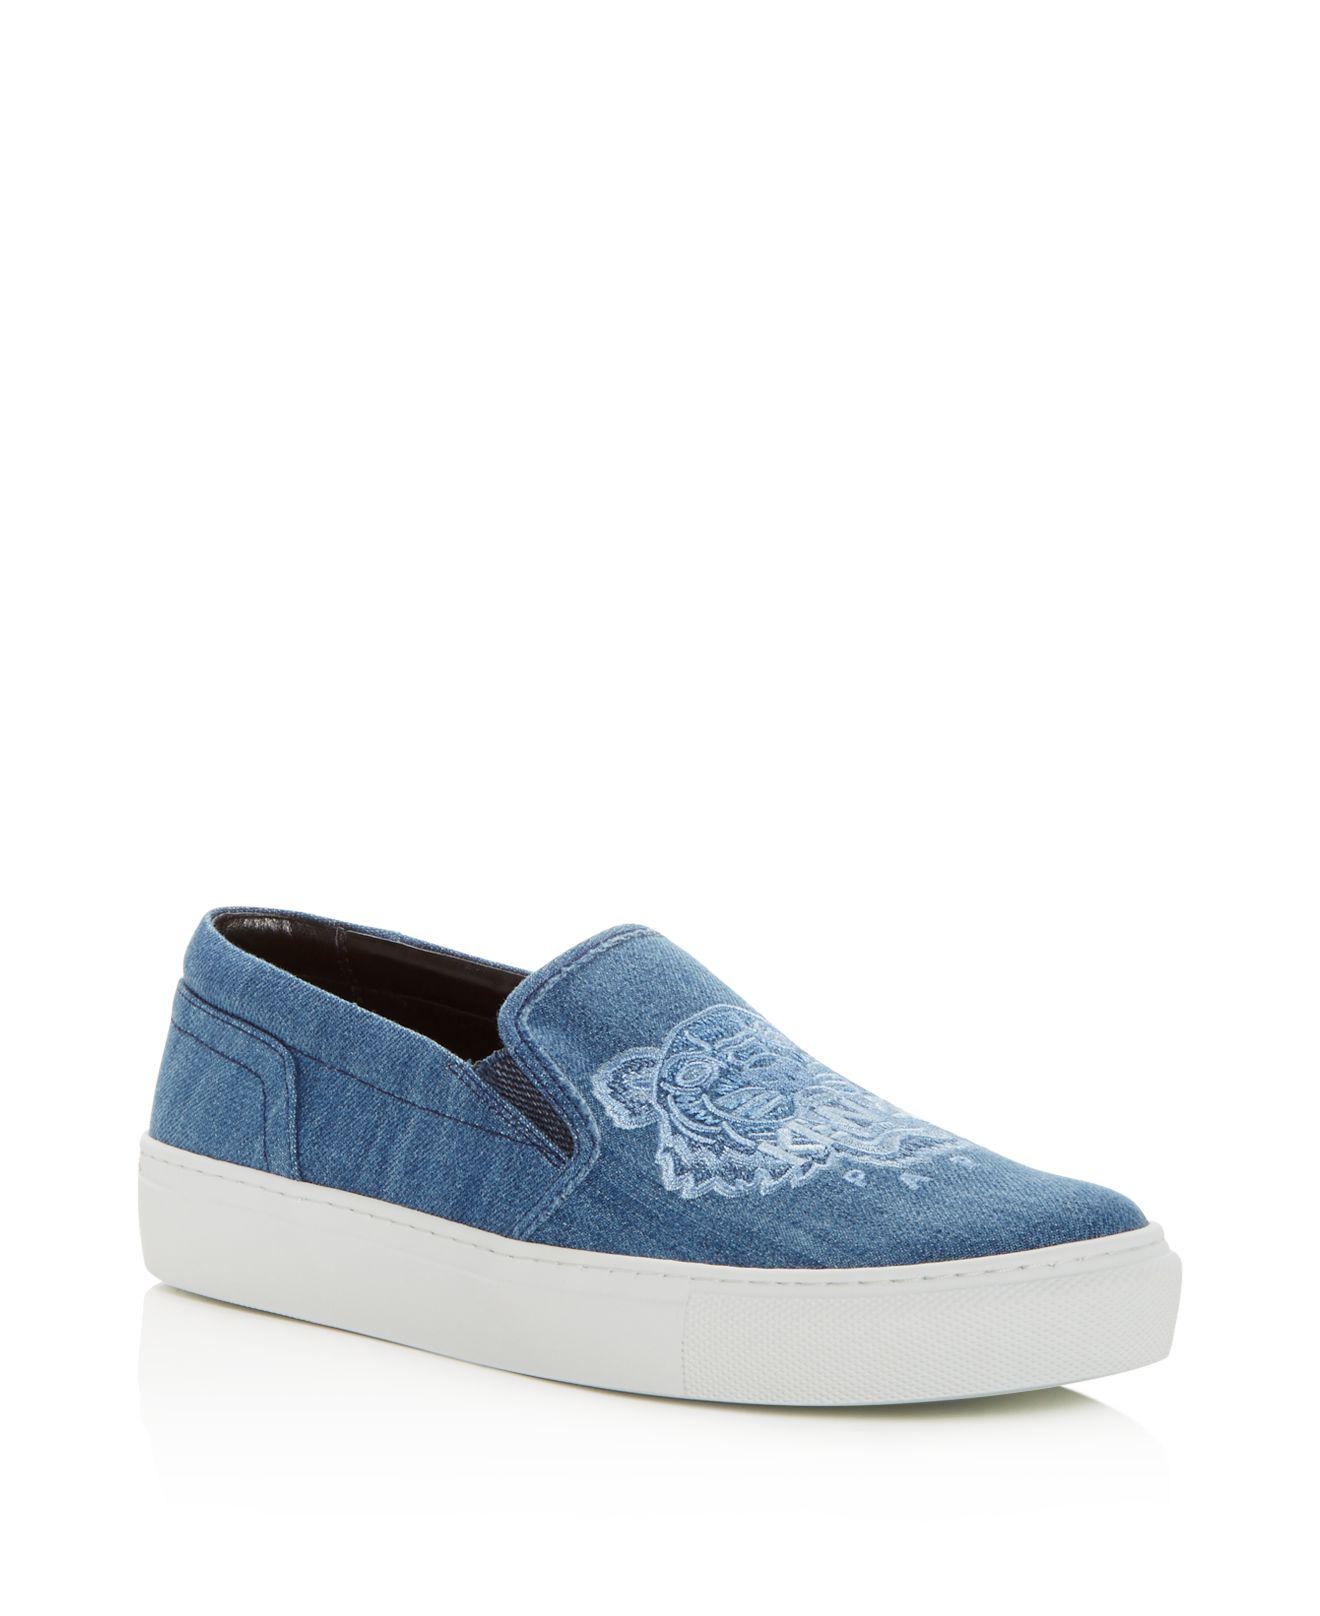 Kenzo Women's Special Tiger Embroidered Denim Slip-On Sneakers ohhEtc55